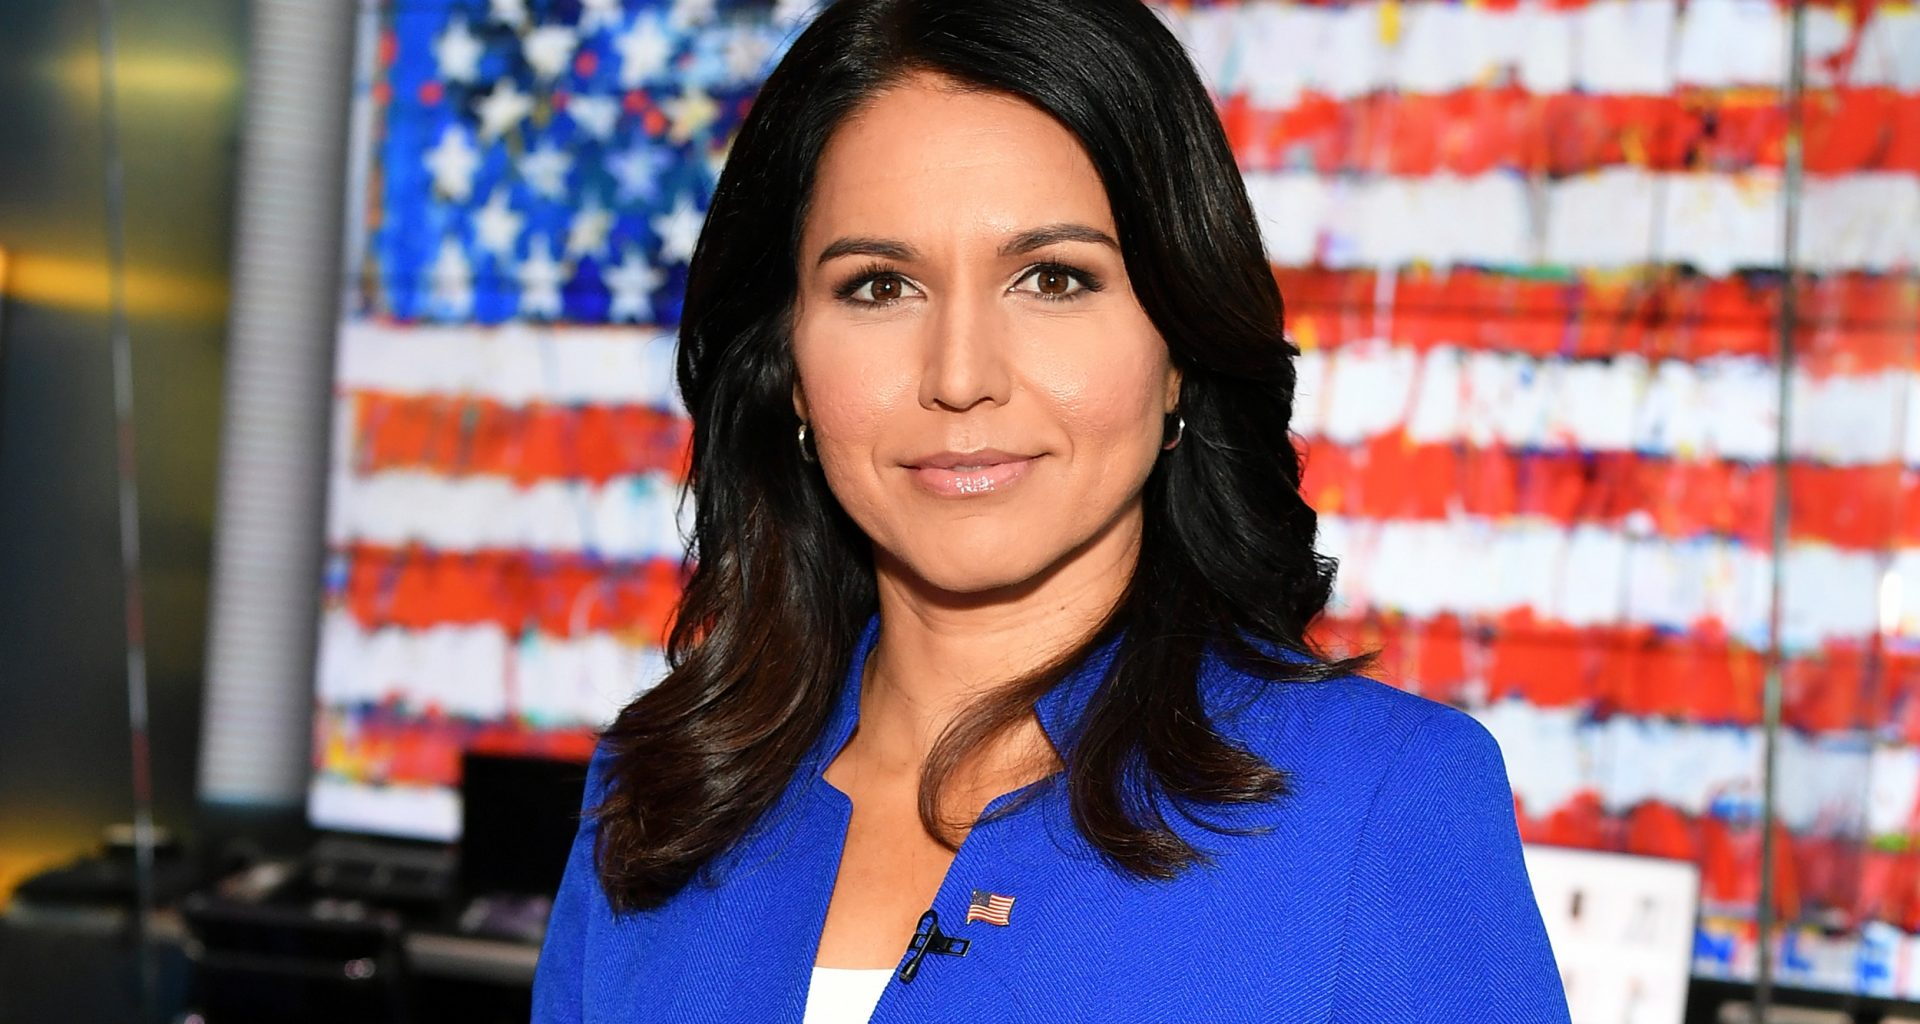 Tulsi Gabbard Breaks from Party Lines, Discusses Biden Team Scandals